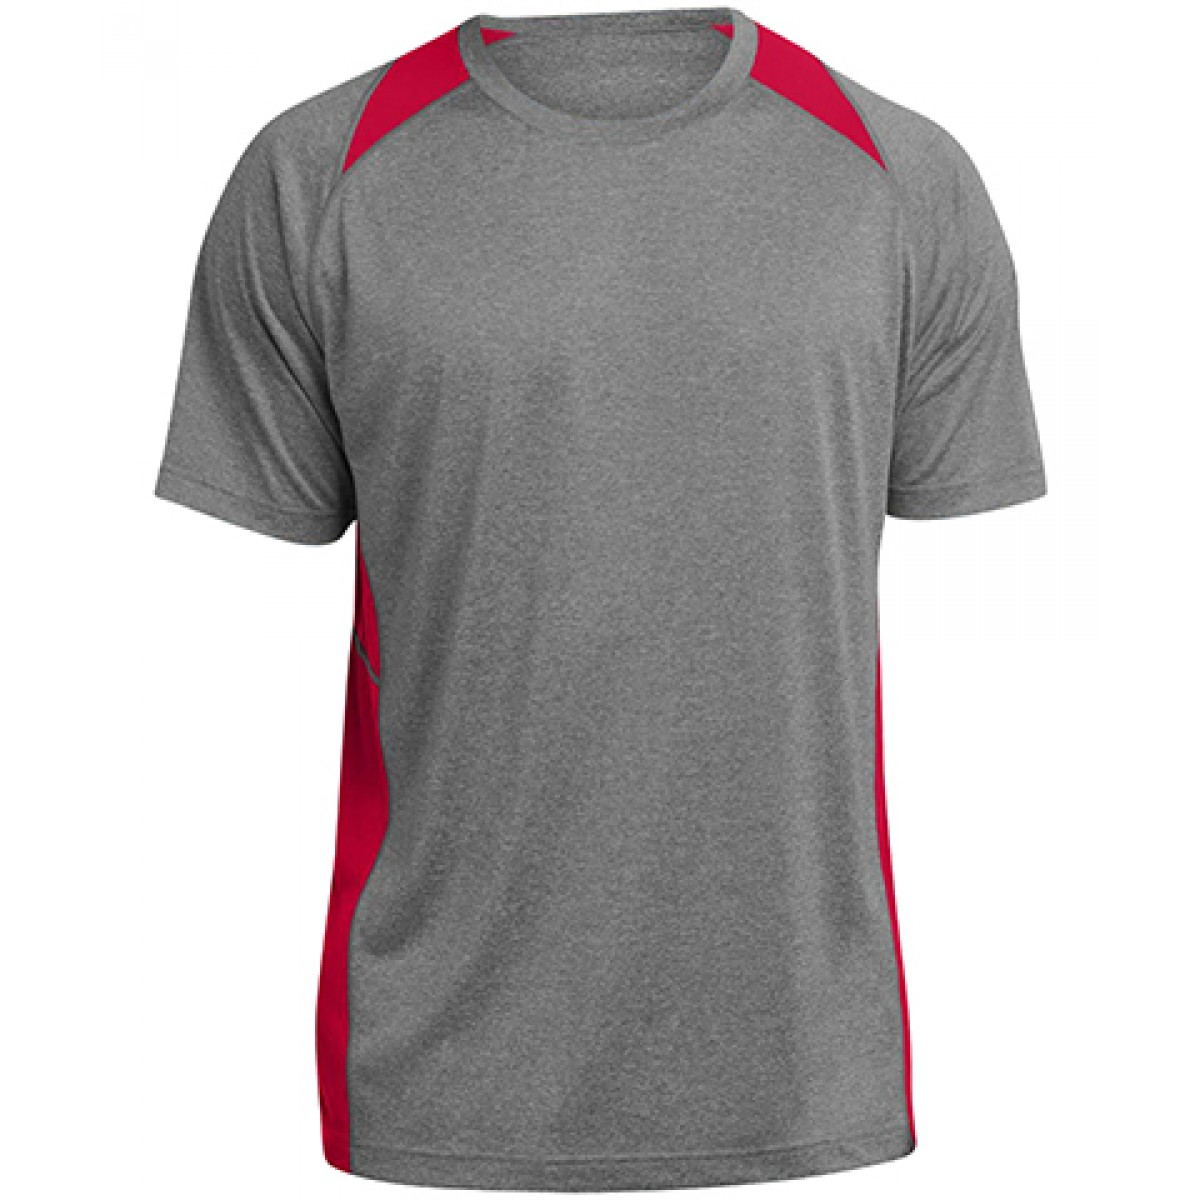 Heather Colorblock Contender™ Tee-Gray/Red-S